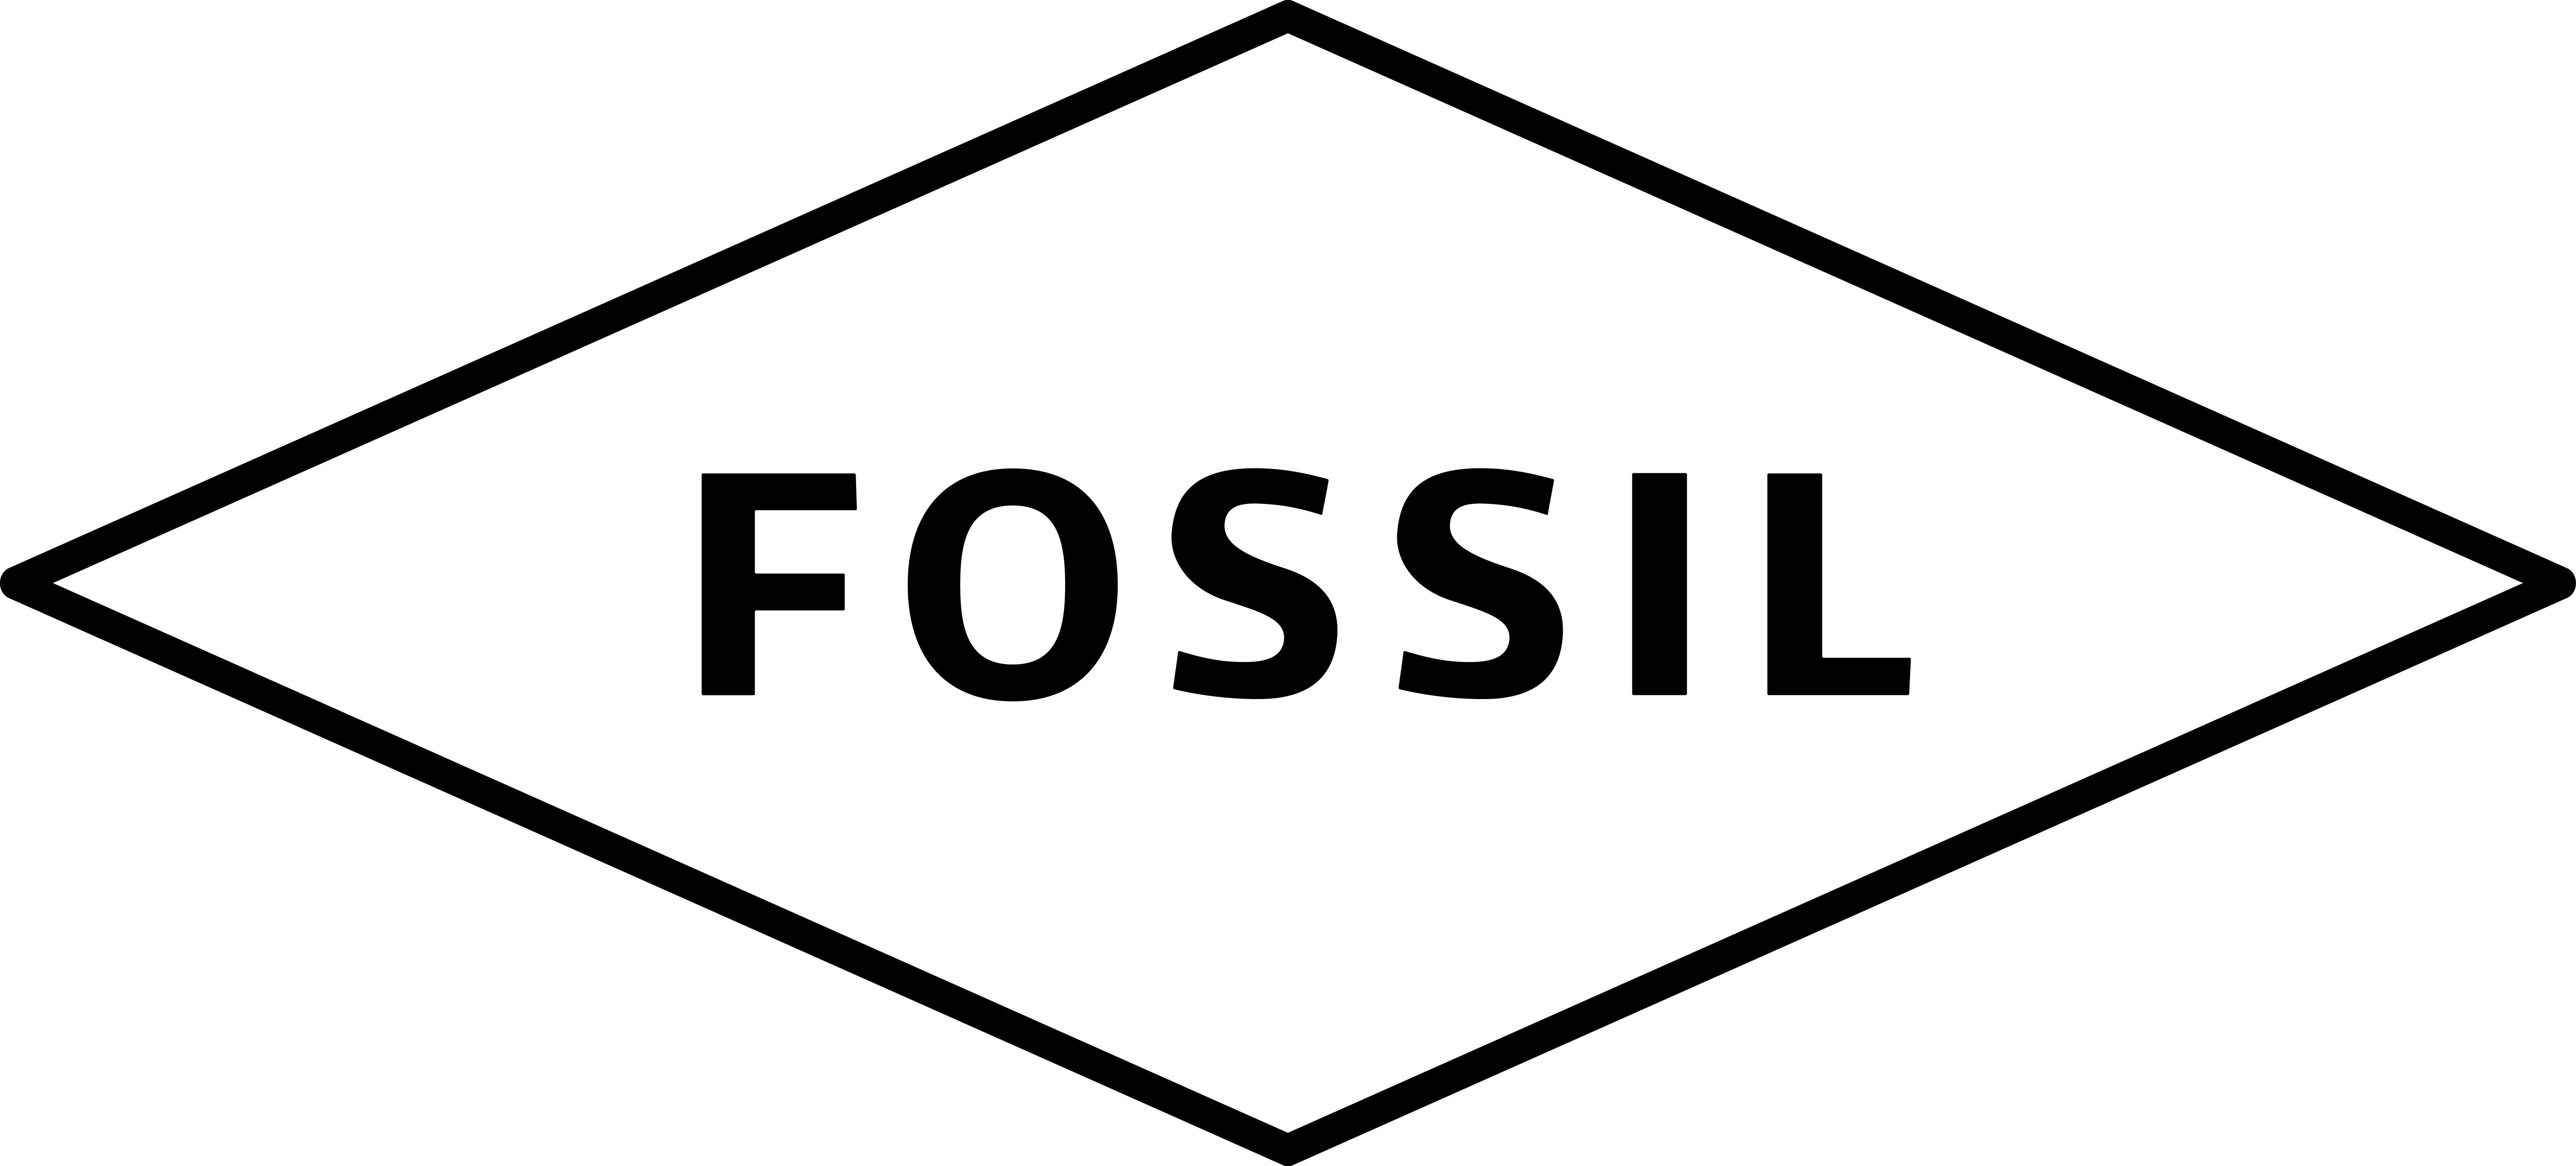 Montre Fossil logo